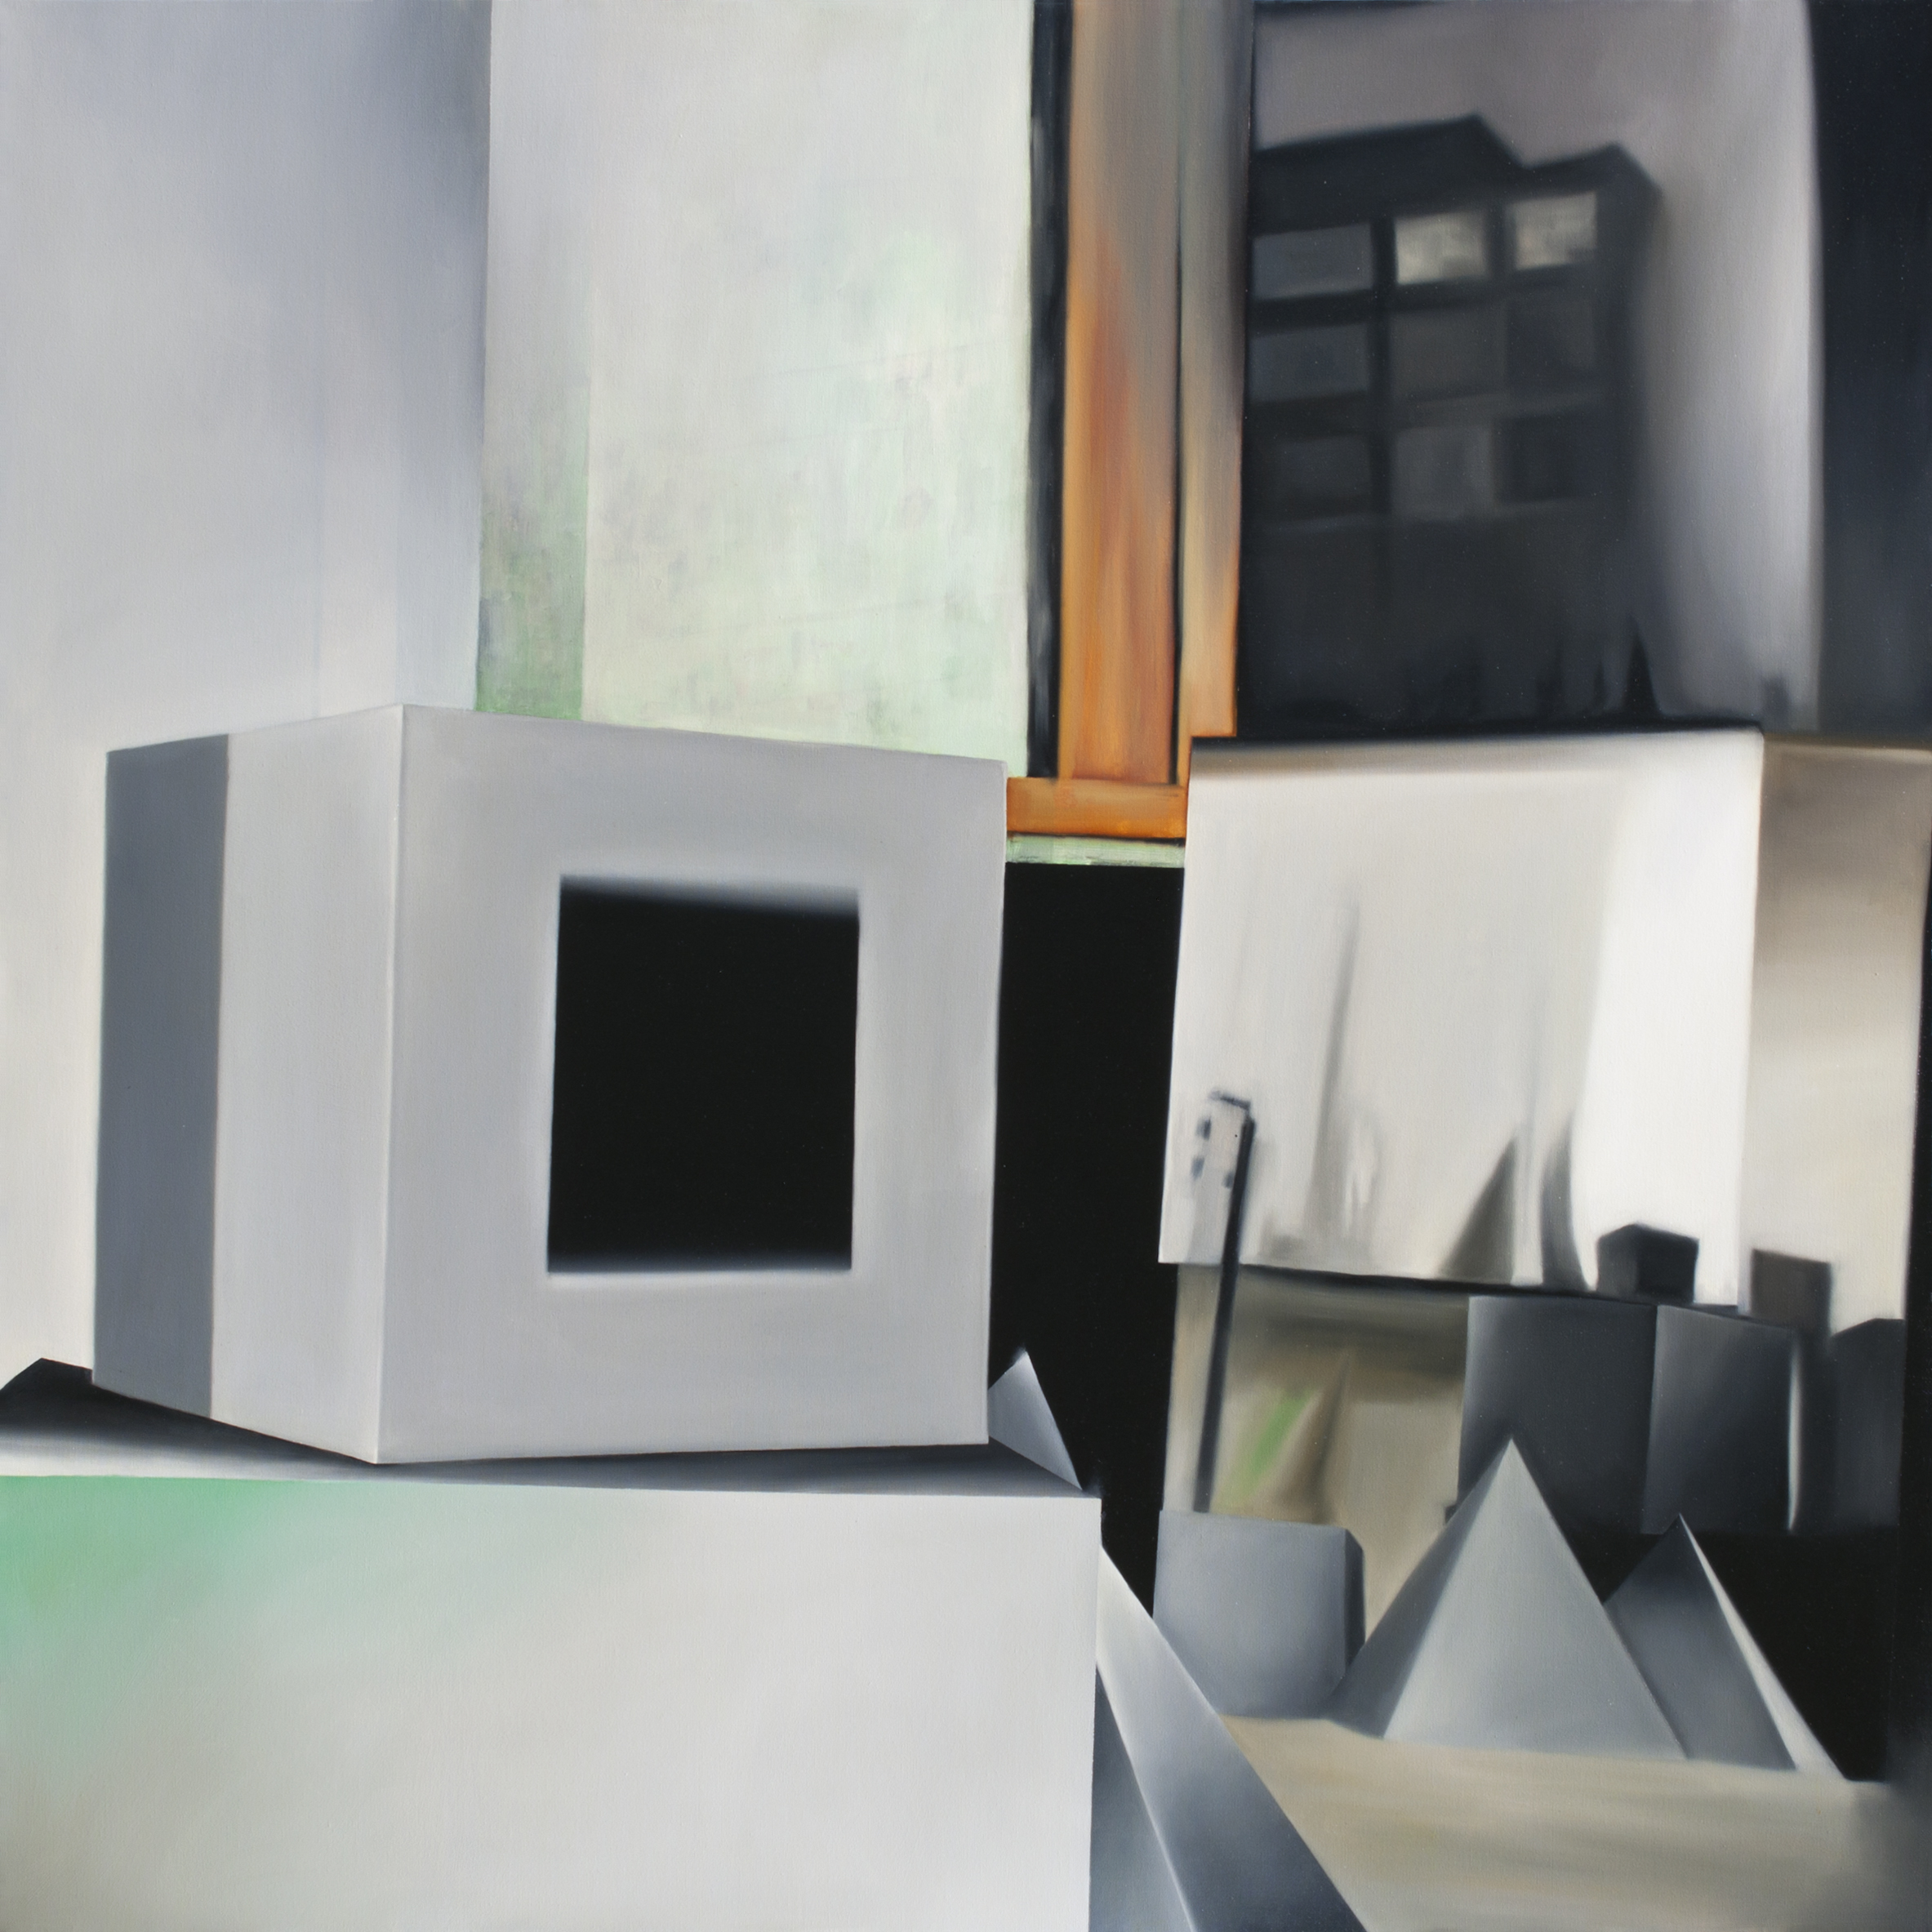 """24 Hours (from Jessica Eaton studio visit) 2014, Oil on canvas, 48"""" x 48"""""""